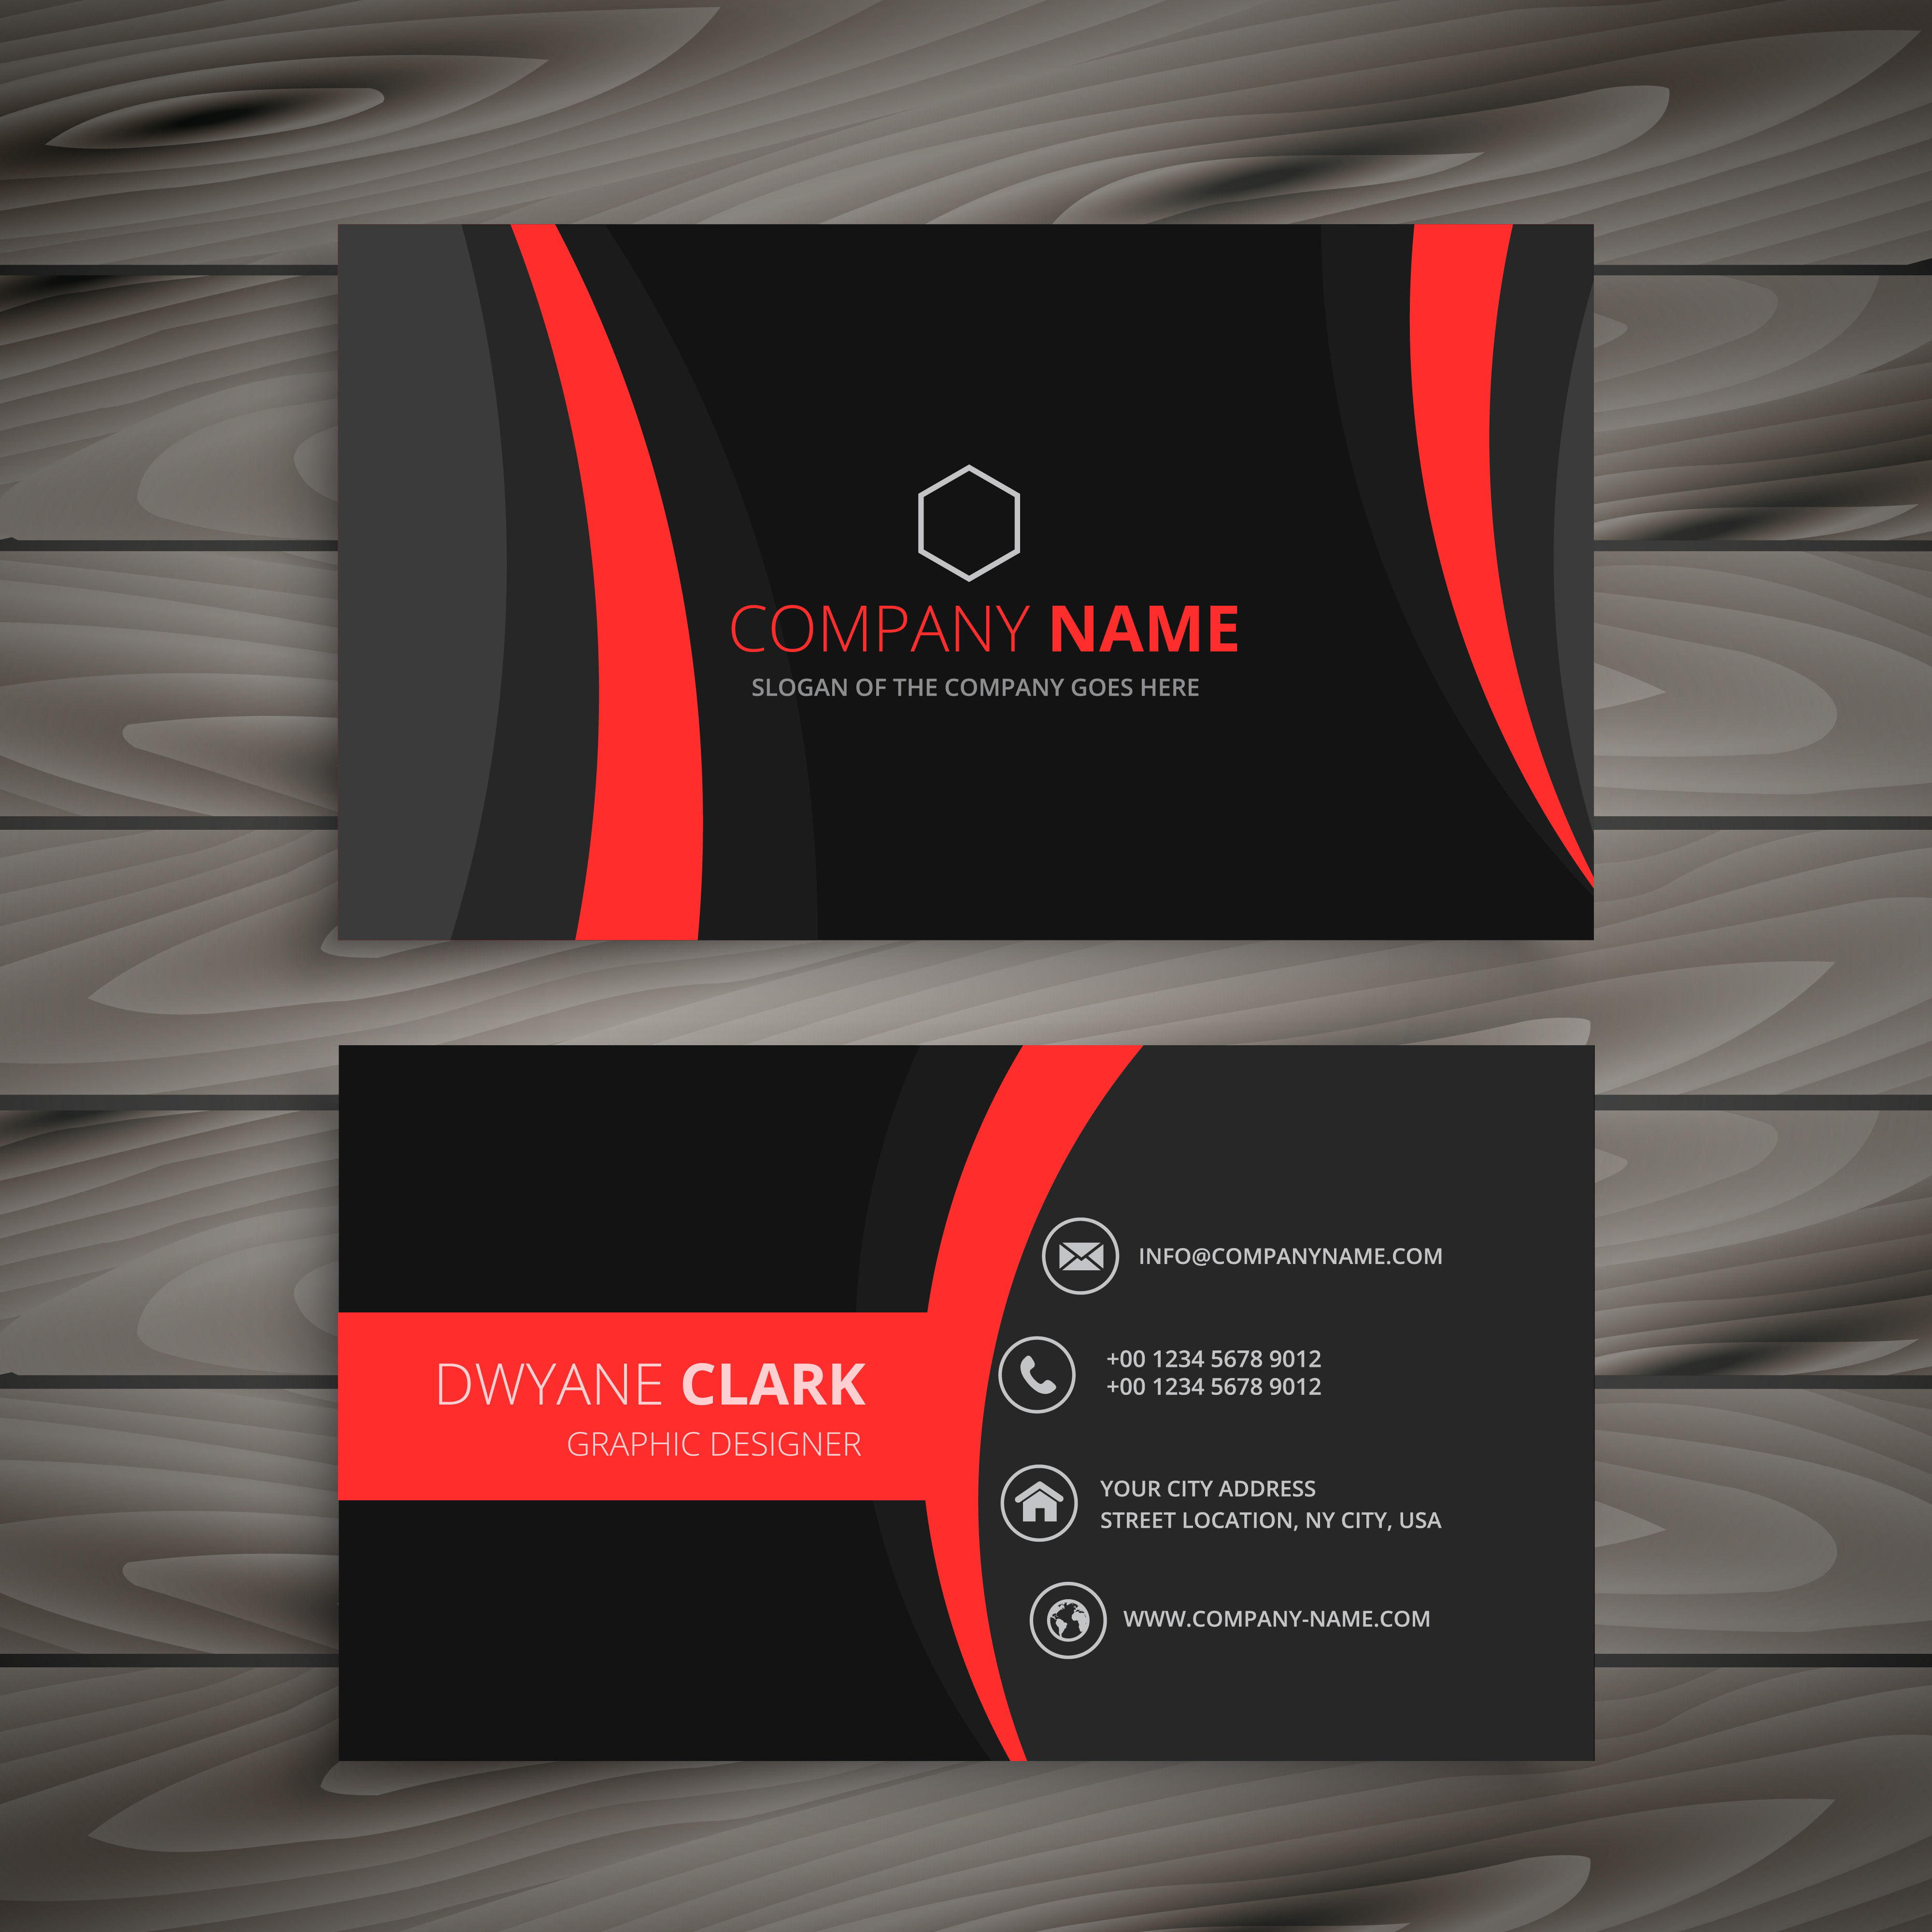 Dark modern red black business card template vector design illus dark modern red black business card template vector design illus download free vector art stock graphics images reheart Images